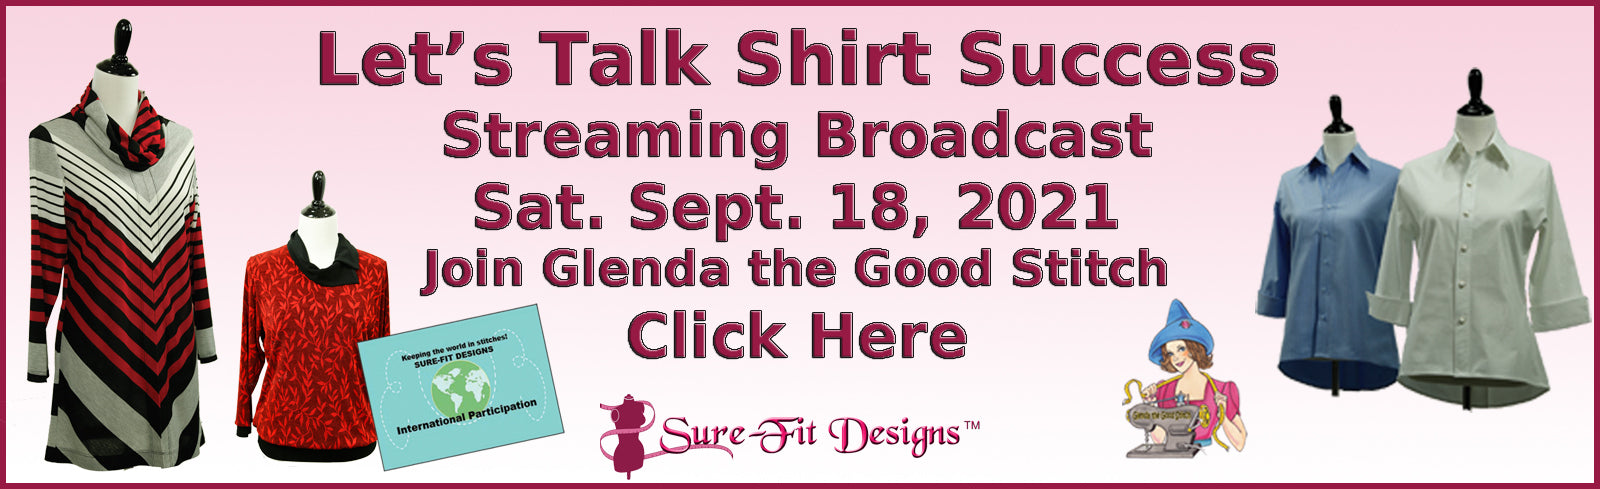 Let's Talk Shirt Success streaming broadcast